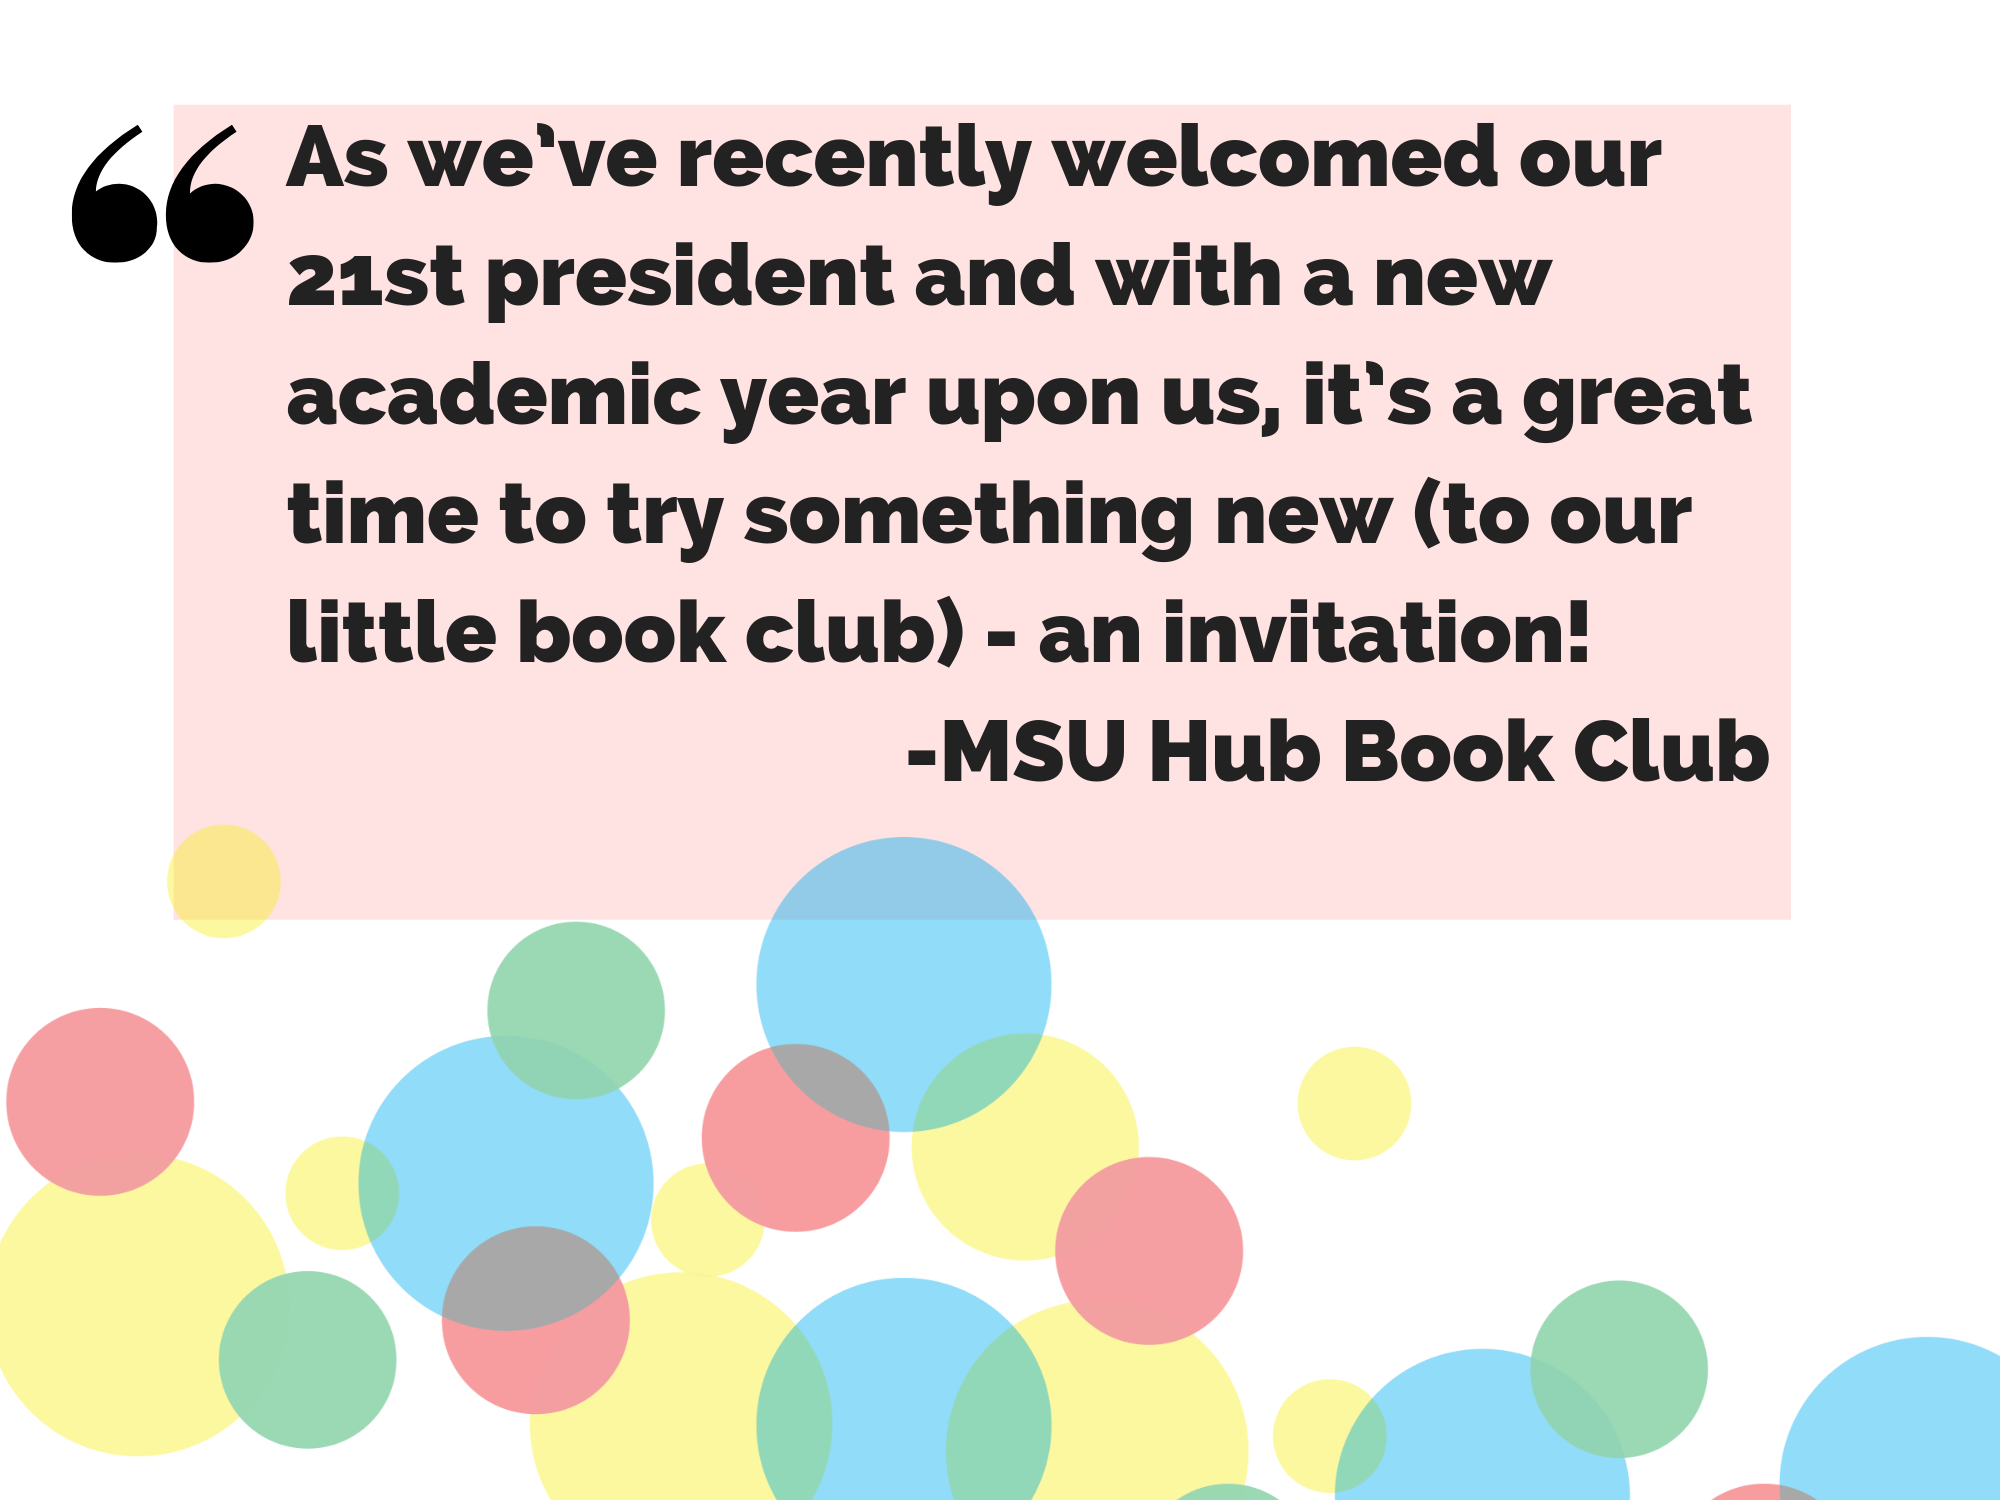 As we've recently welcomed our 21st president and with a new academic year upon us, it's a great time to try something new (to our little book club) - an invitation!